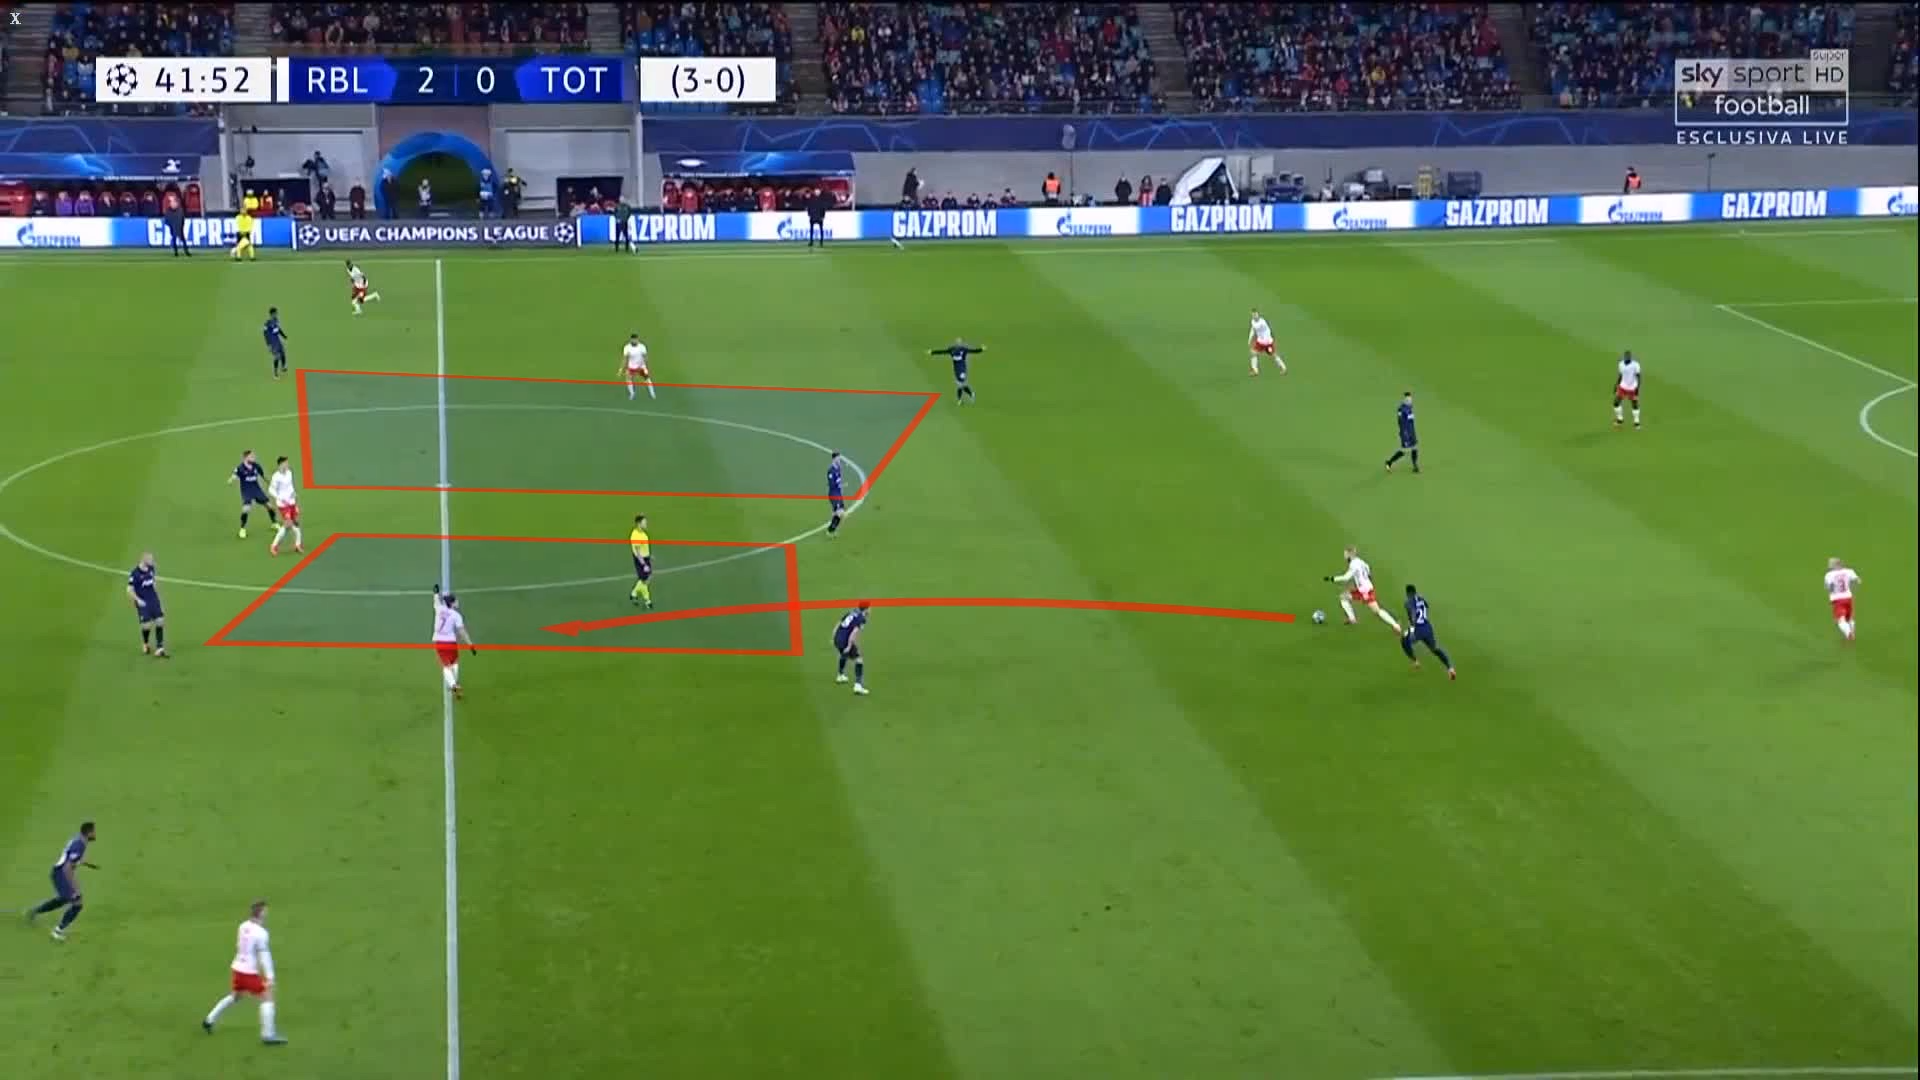 UEFA Champions League 2019/2020: RB Leipzig vs Tottenham Hotspur – tactical analysis tactics